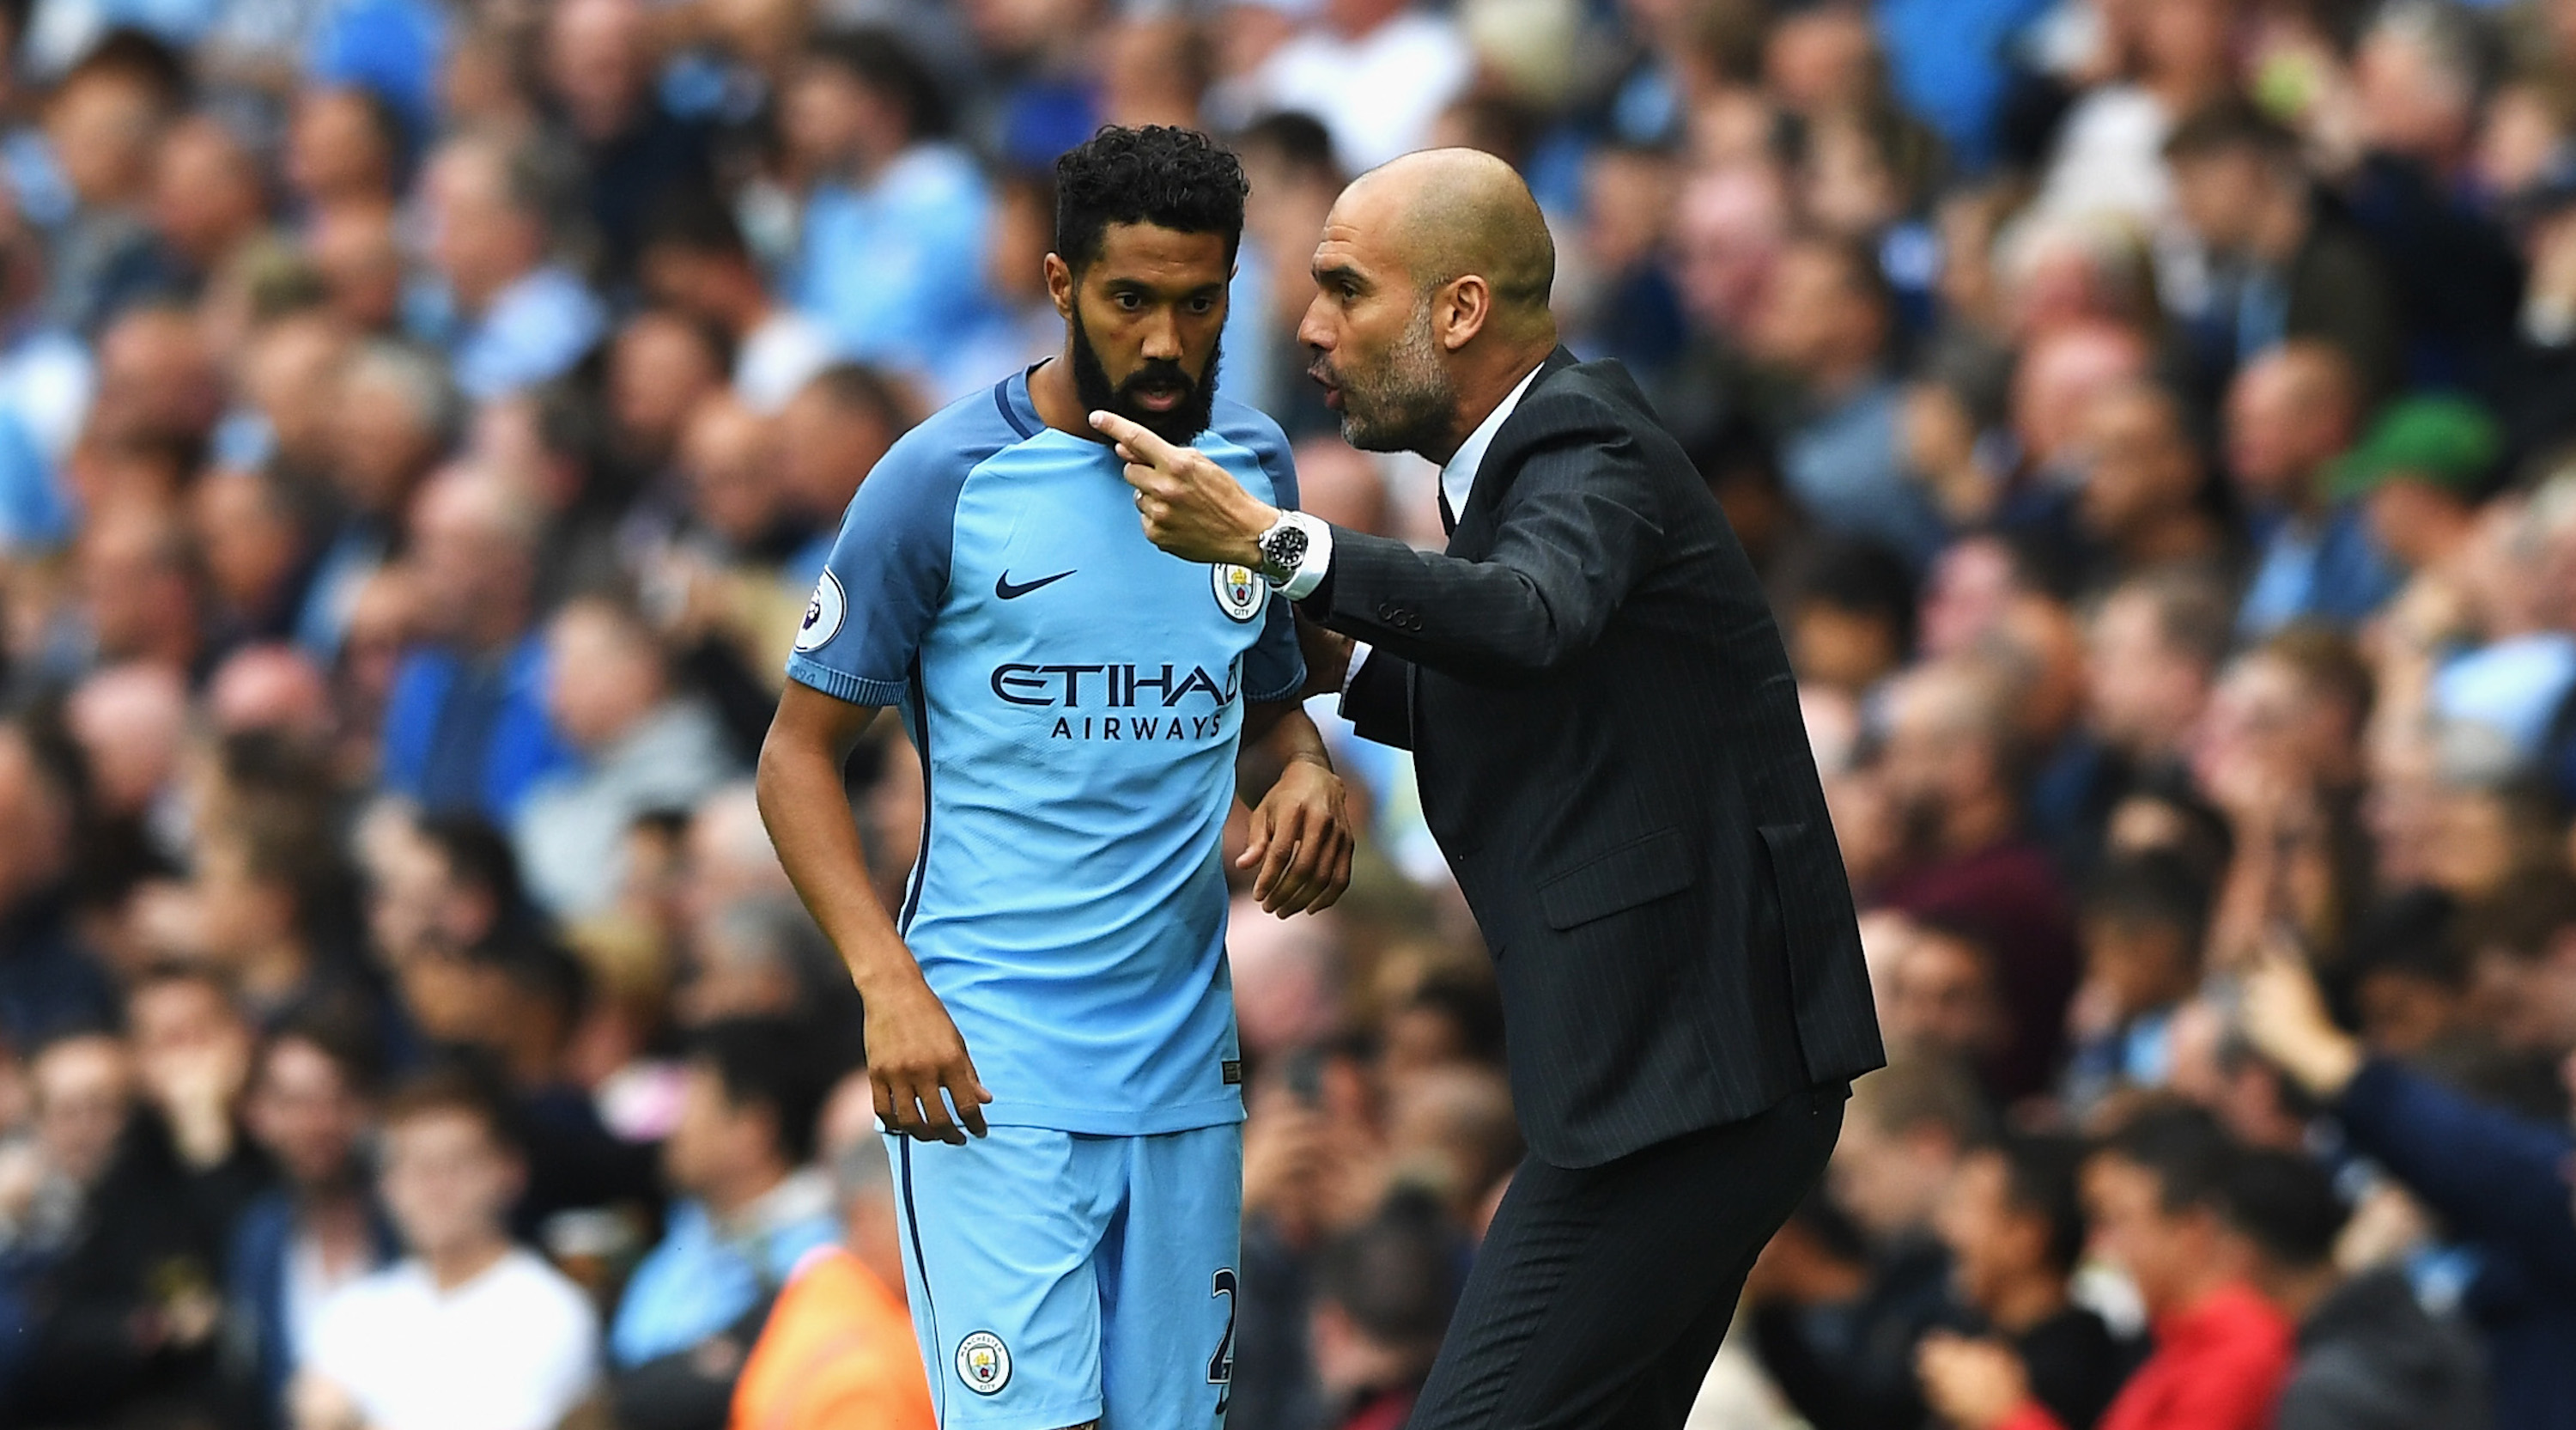 MANCHESTER, ENGLAND - AUGUST 13: Gael Clichy of Manchester City gets instructins from Josep Guardiola, Manager of Manchester City during the Premier League match between Manchester City and Sunderland at Etihad Stadium on August 13, 2016 in Manchester, England. (Photo by Stu Forster/Getty Images)